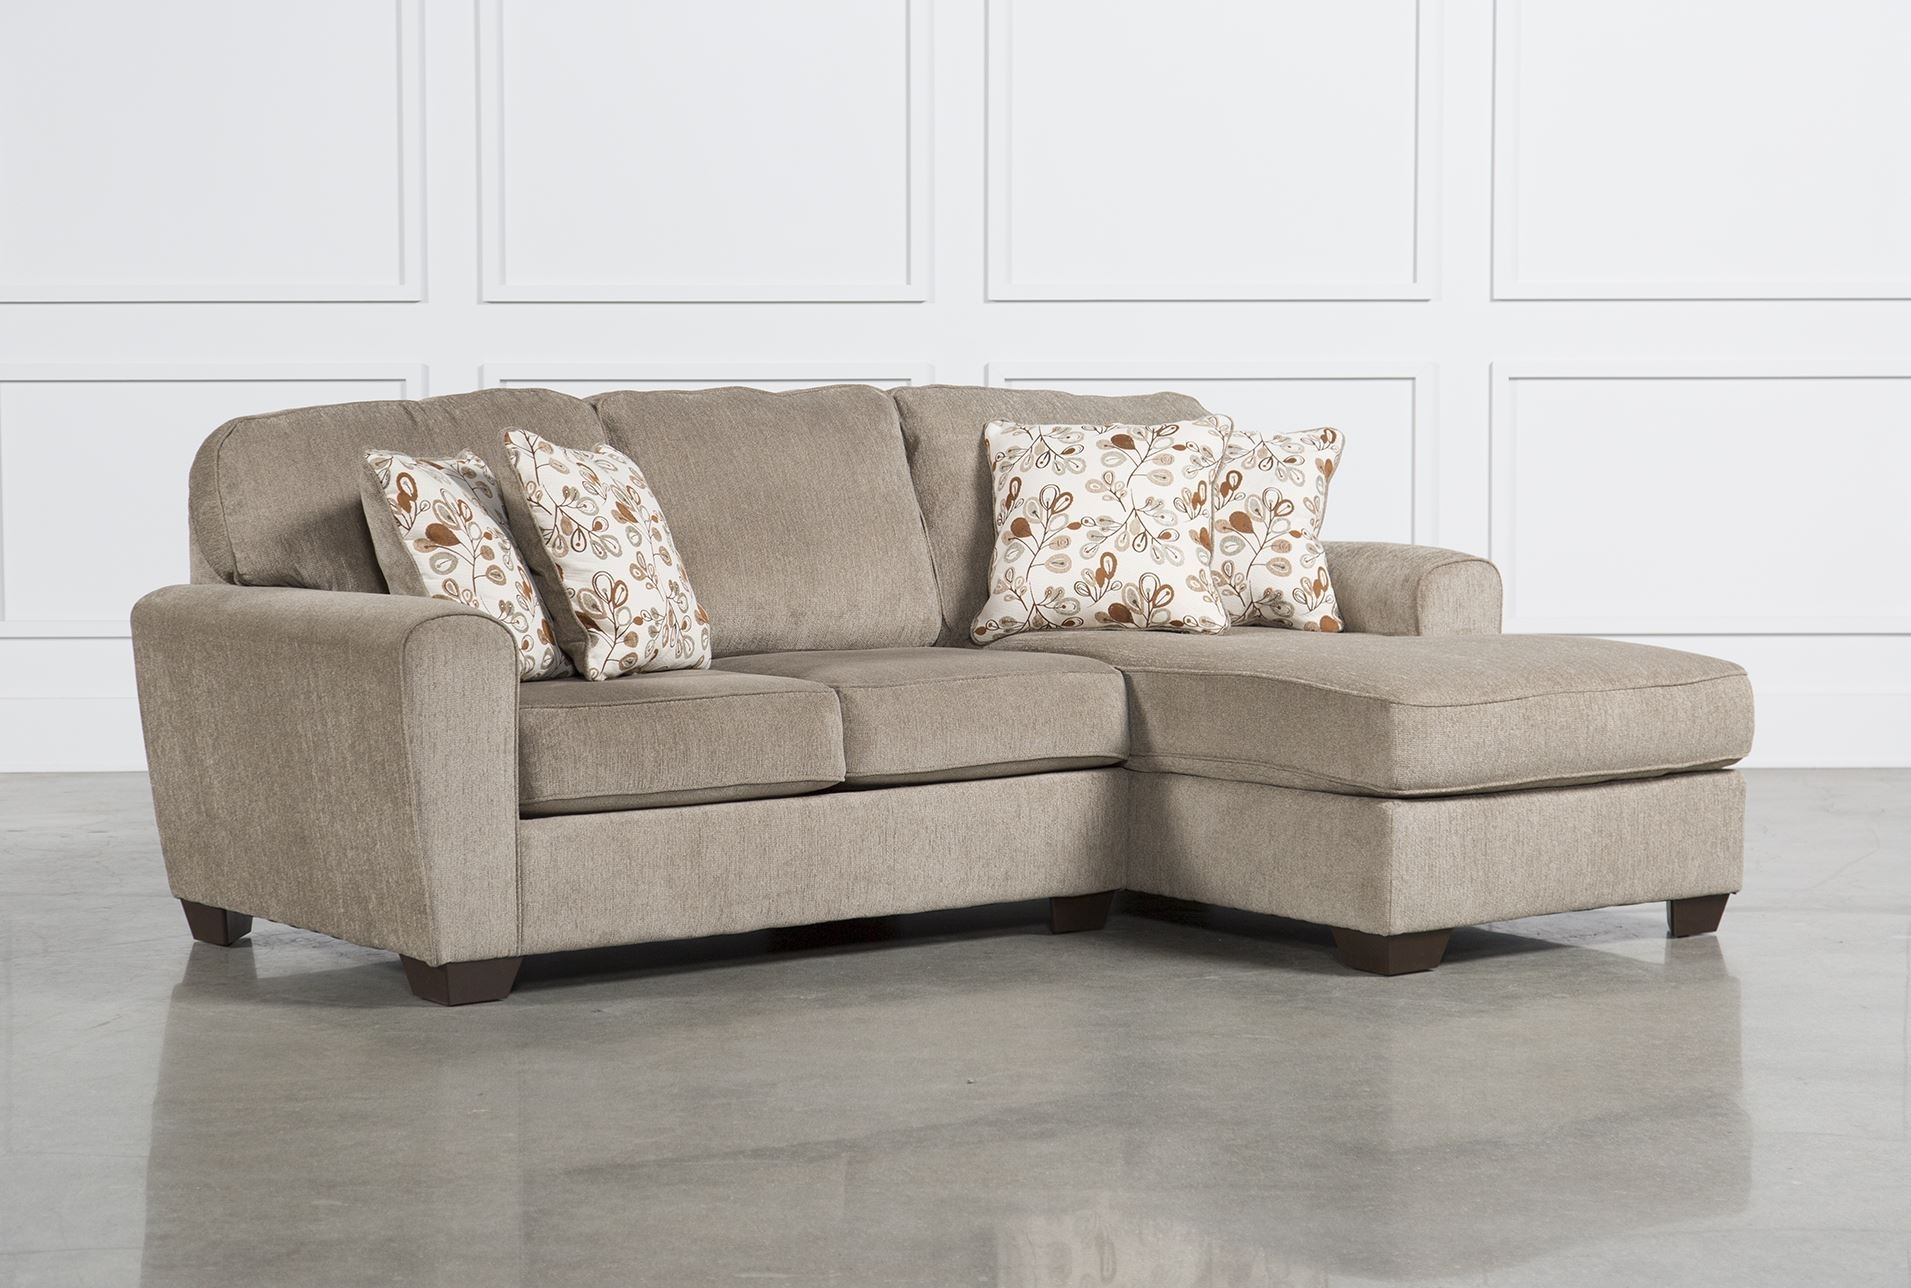 Collection Of Solutions 2 Piece Chaise Sectional With Patola Park 2 regarding Delano 2 Piece Sectionals With Laf Oversized Chaise (Image 11 of 30)